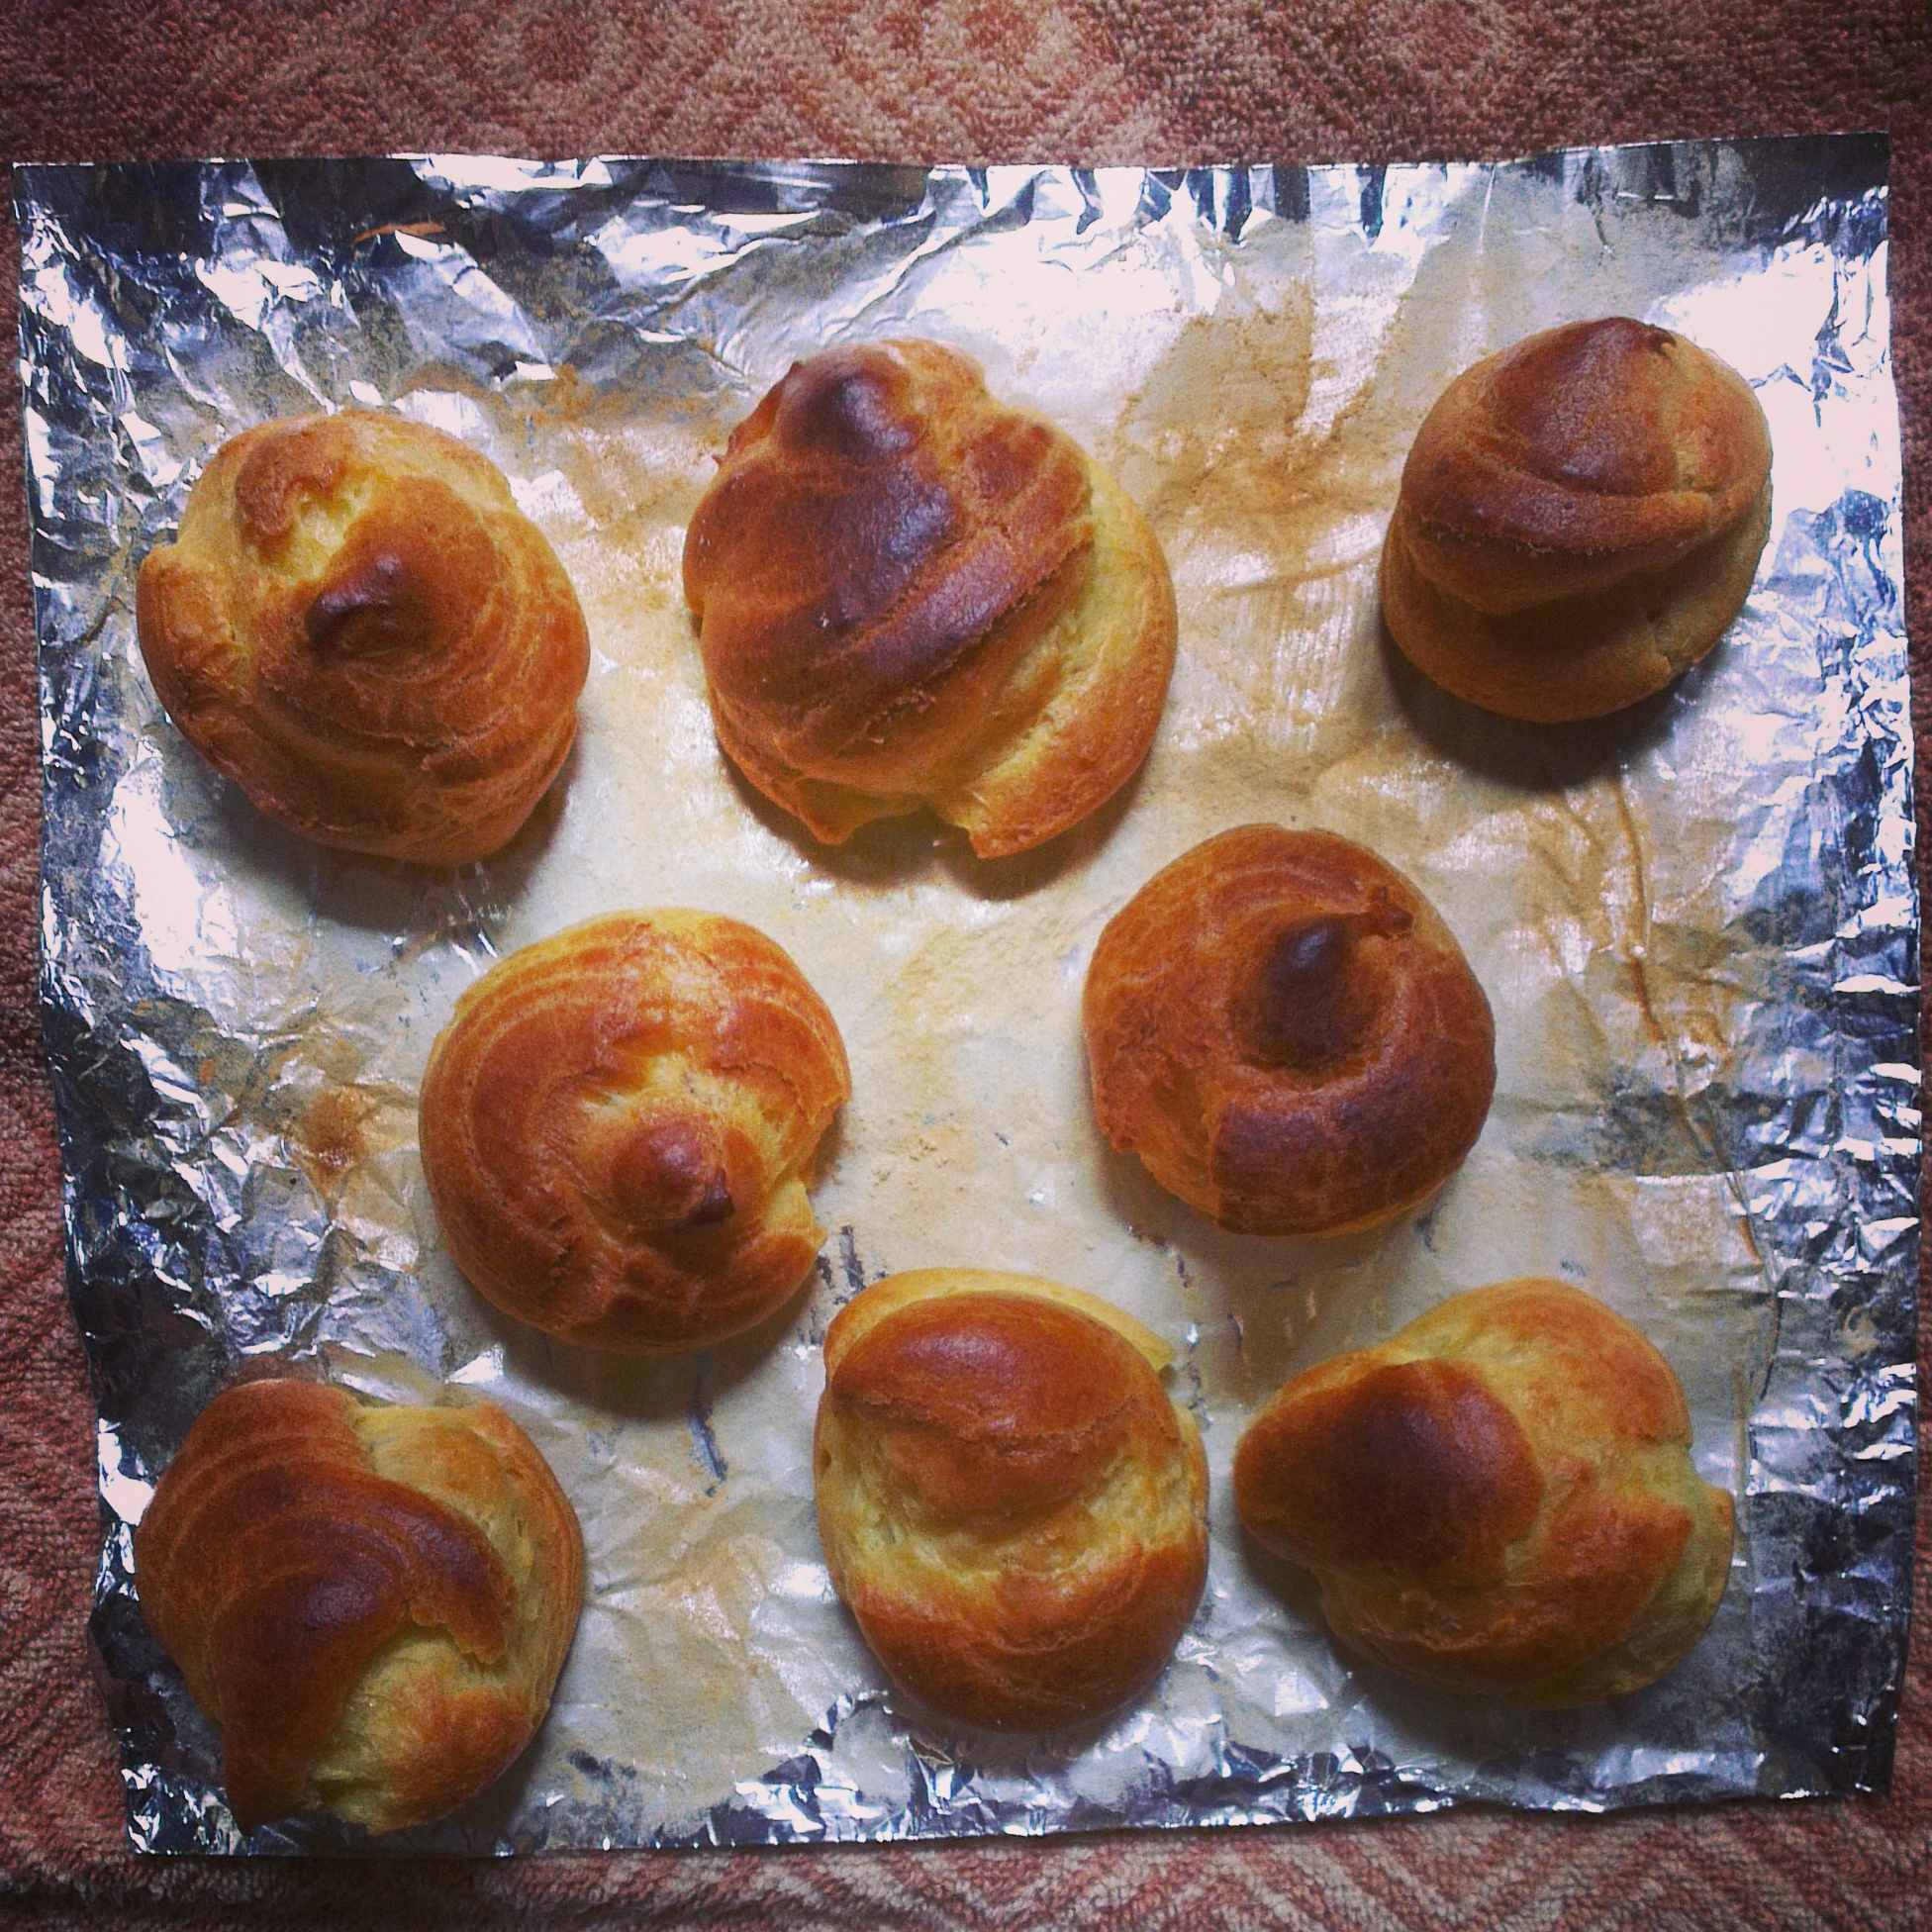 freshly baked choux pastry